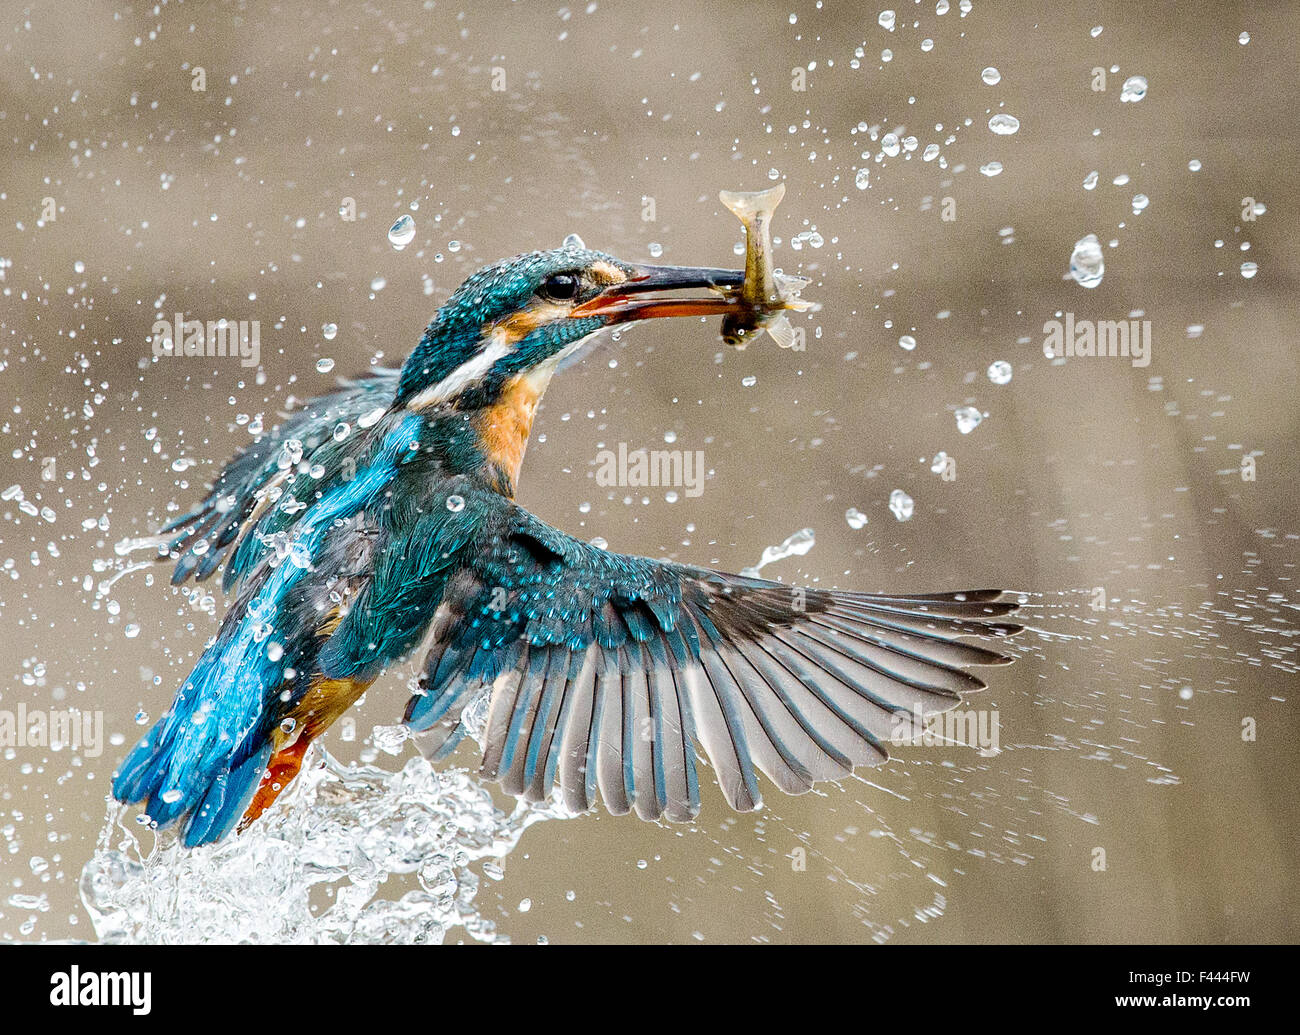 Kingfisher dive with catch - Stock Image